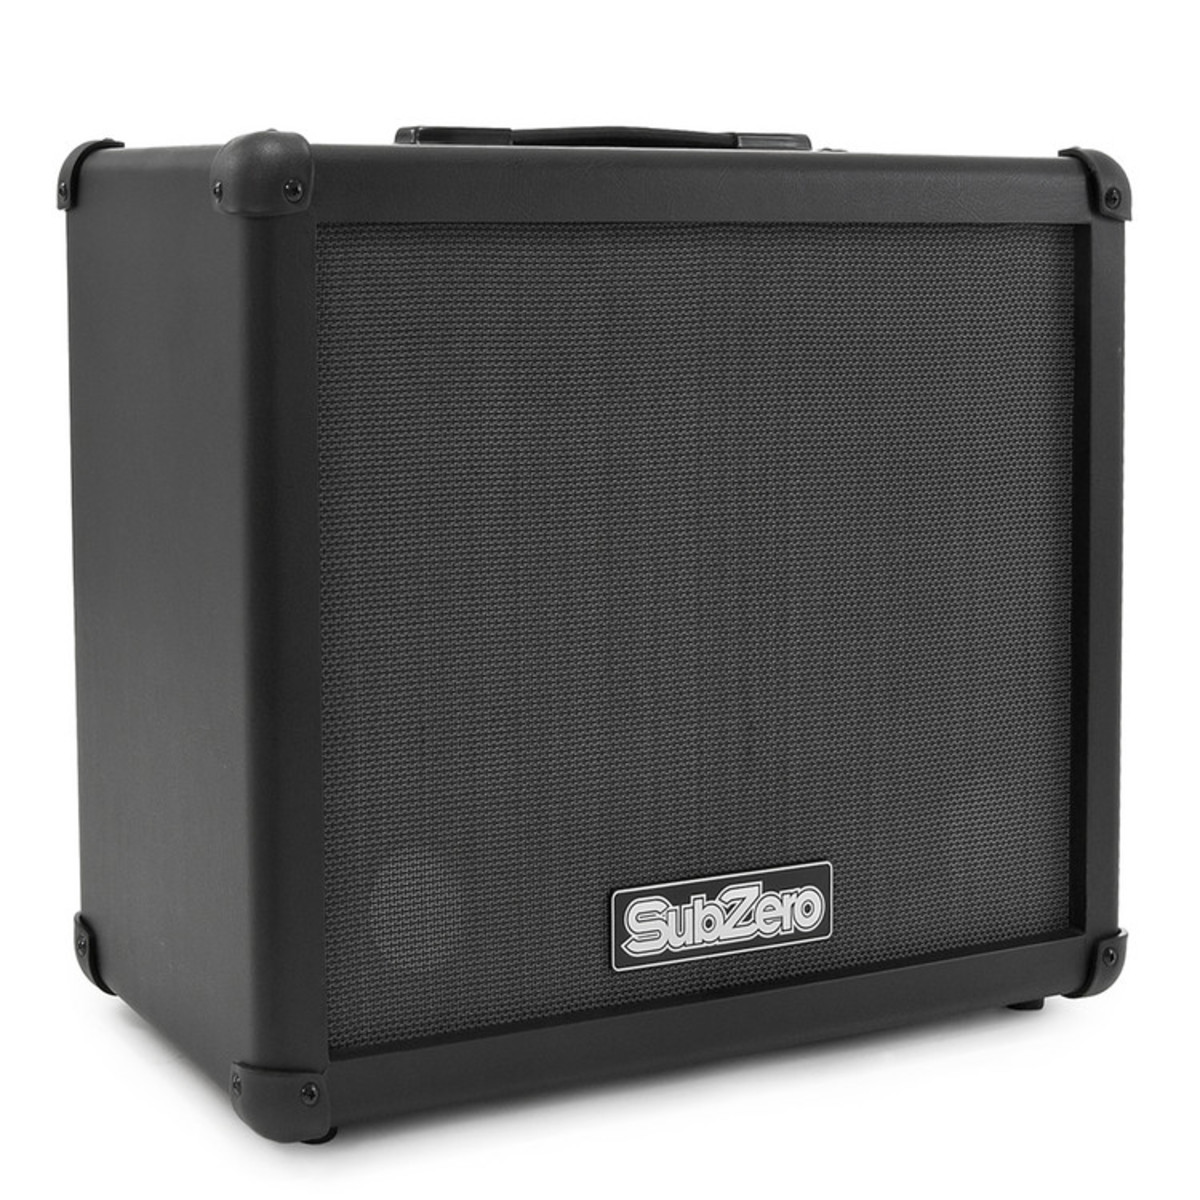 cabinet or id for making speaker guitar amp new grill spe a